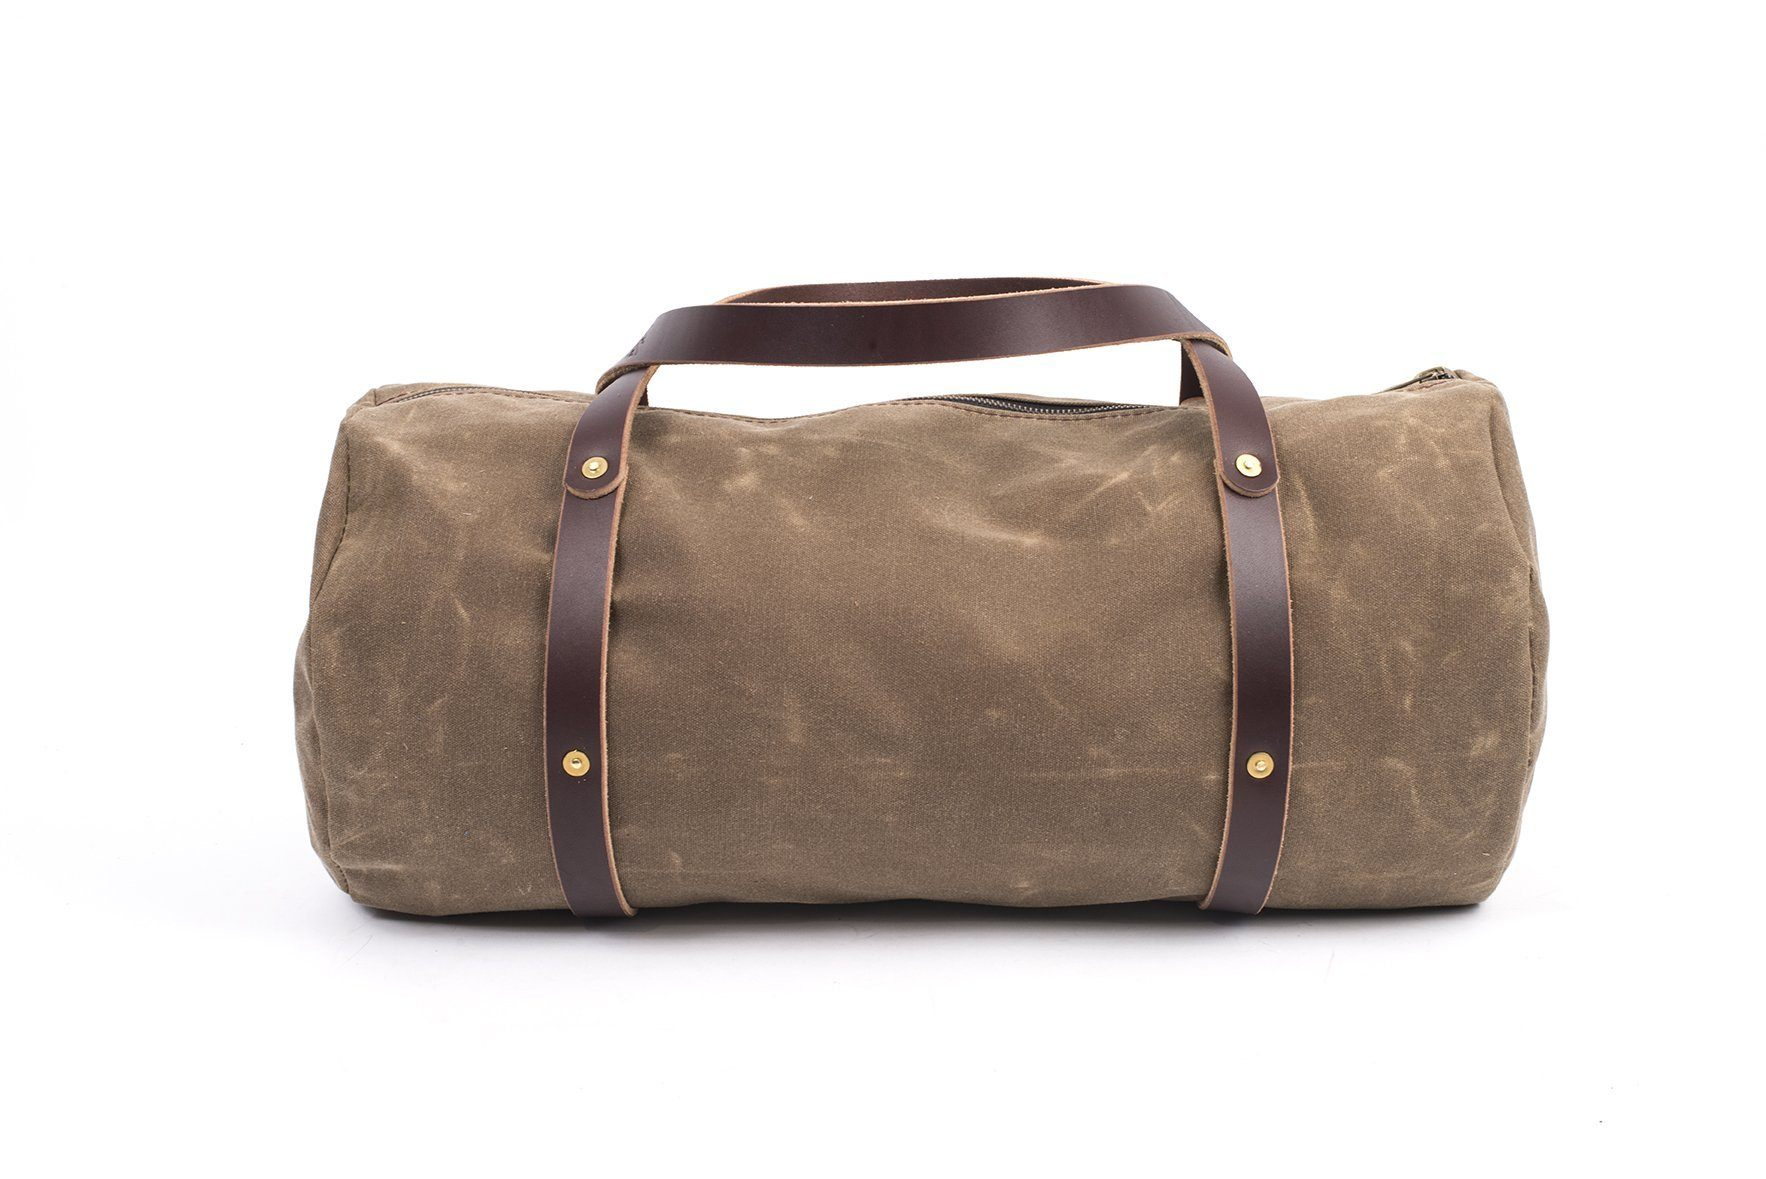 d287d9a9d9c94 WILLIAM WAXED CANVAS WEEKENDER DUFFLE BAG - Go Forth Goods